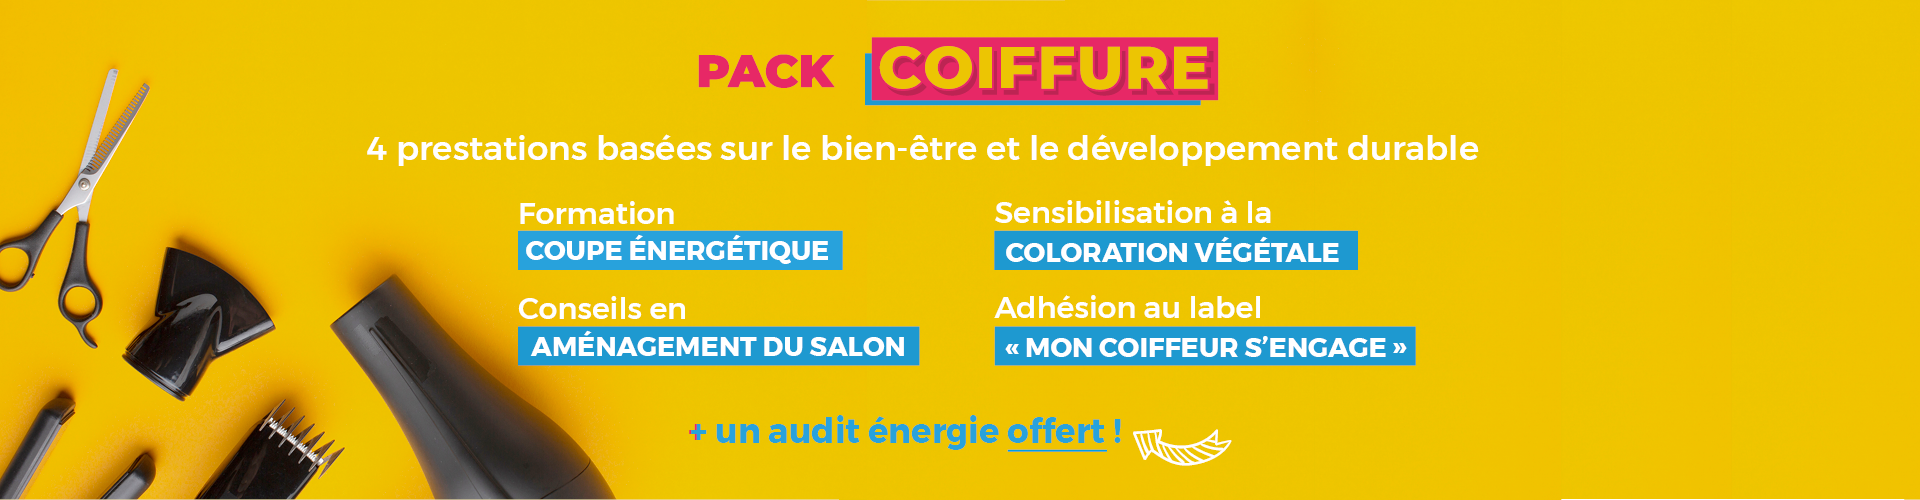 Pack Coiffure CMA Ardèche 5 prestations